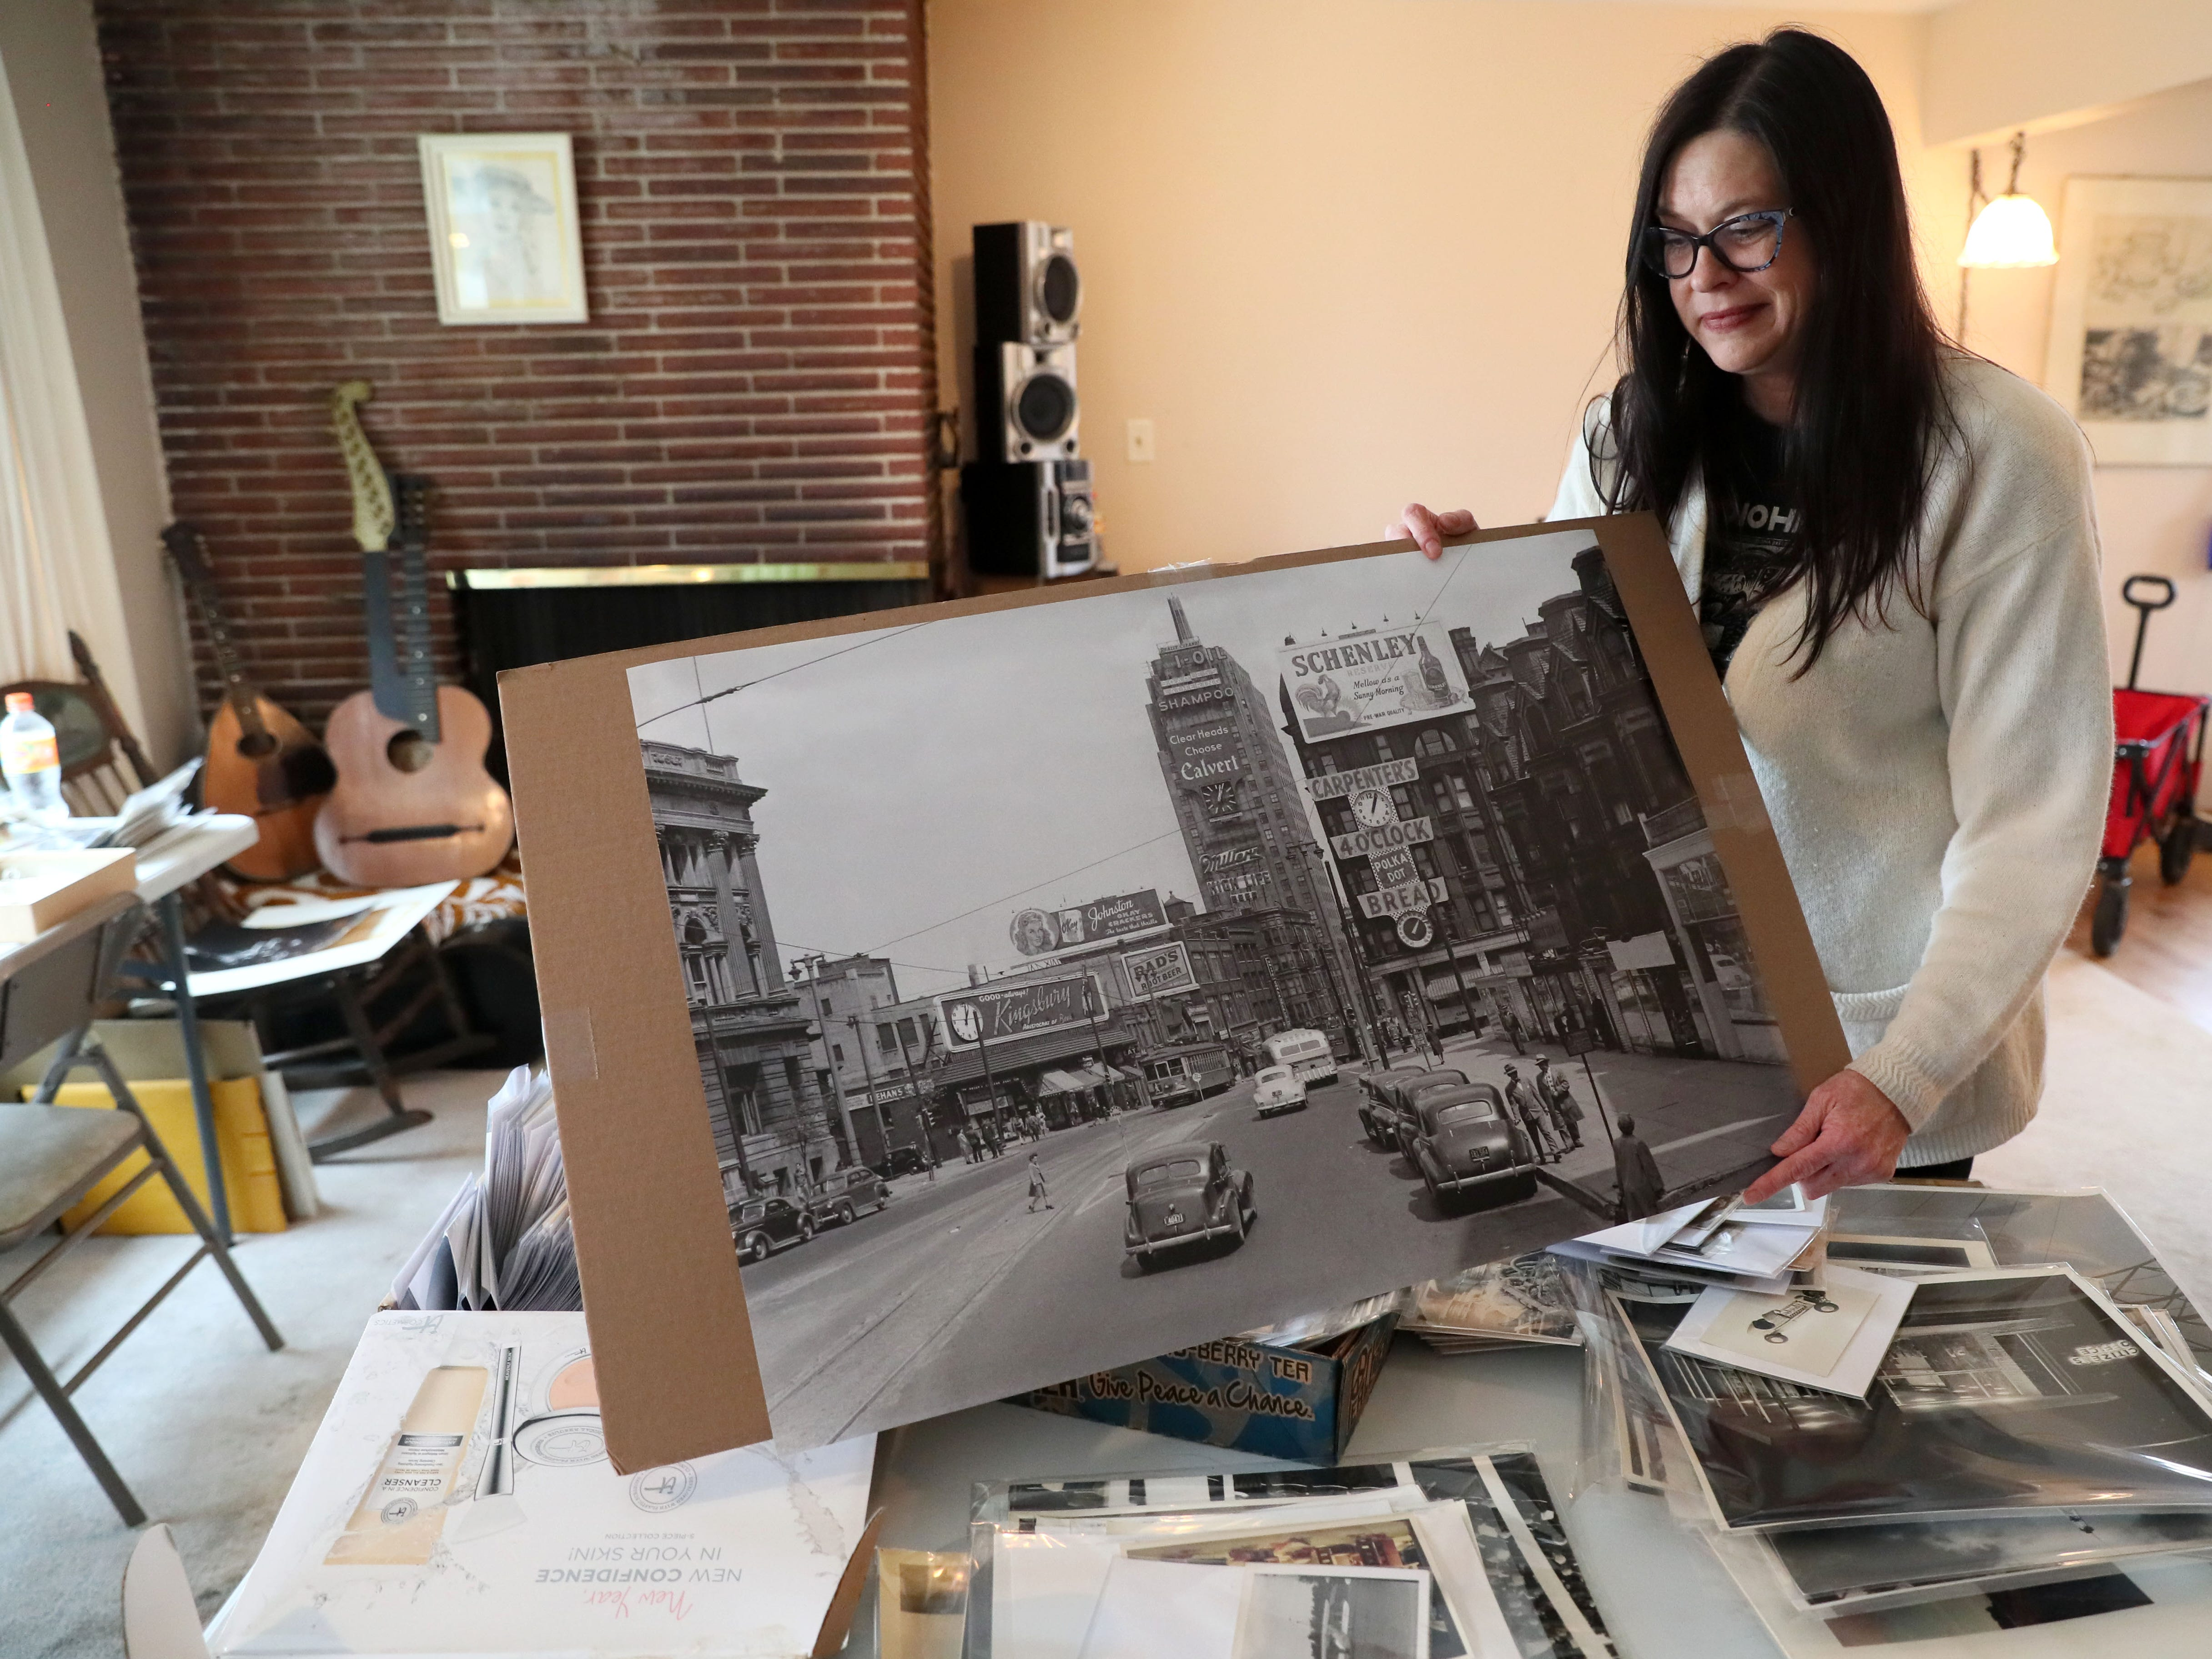 Jennie Lovejoy,  owner of Attic Addict,  shows a large photograph taken by Jake Skocir of Wisconsin Avenue in downtown Milwaukee post World War II. Skocir died a decade ago and left behind around 6,000 black and white photos. They are among the items being sold at an estate sale. The photos also are being featured in a gallery night event on April 11.